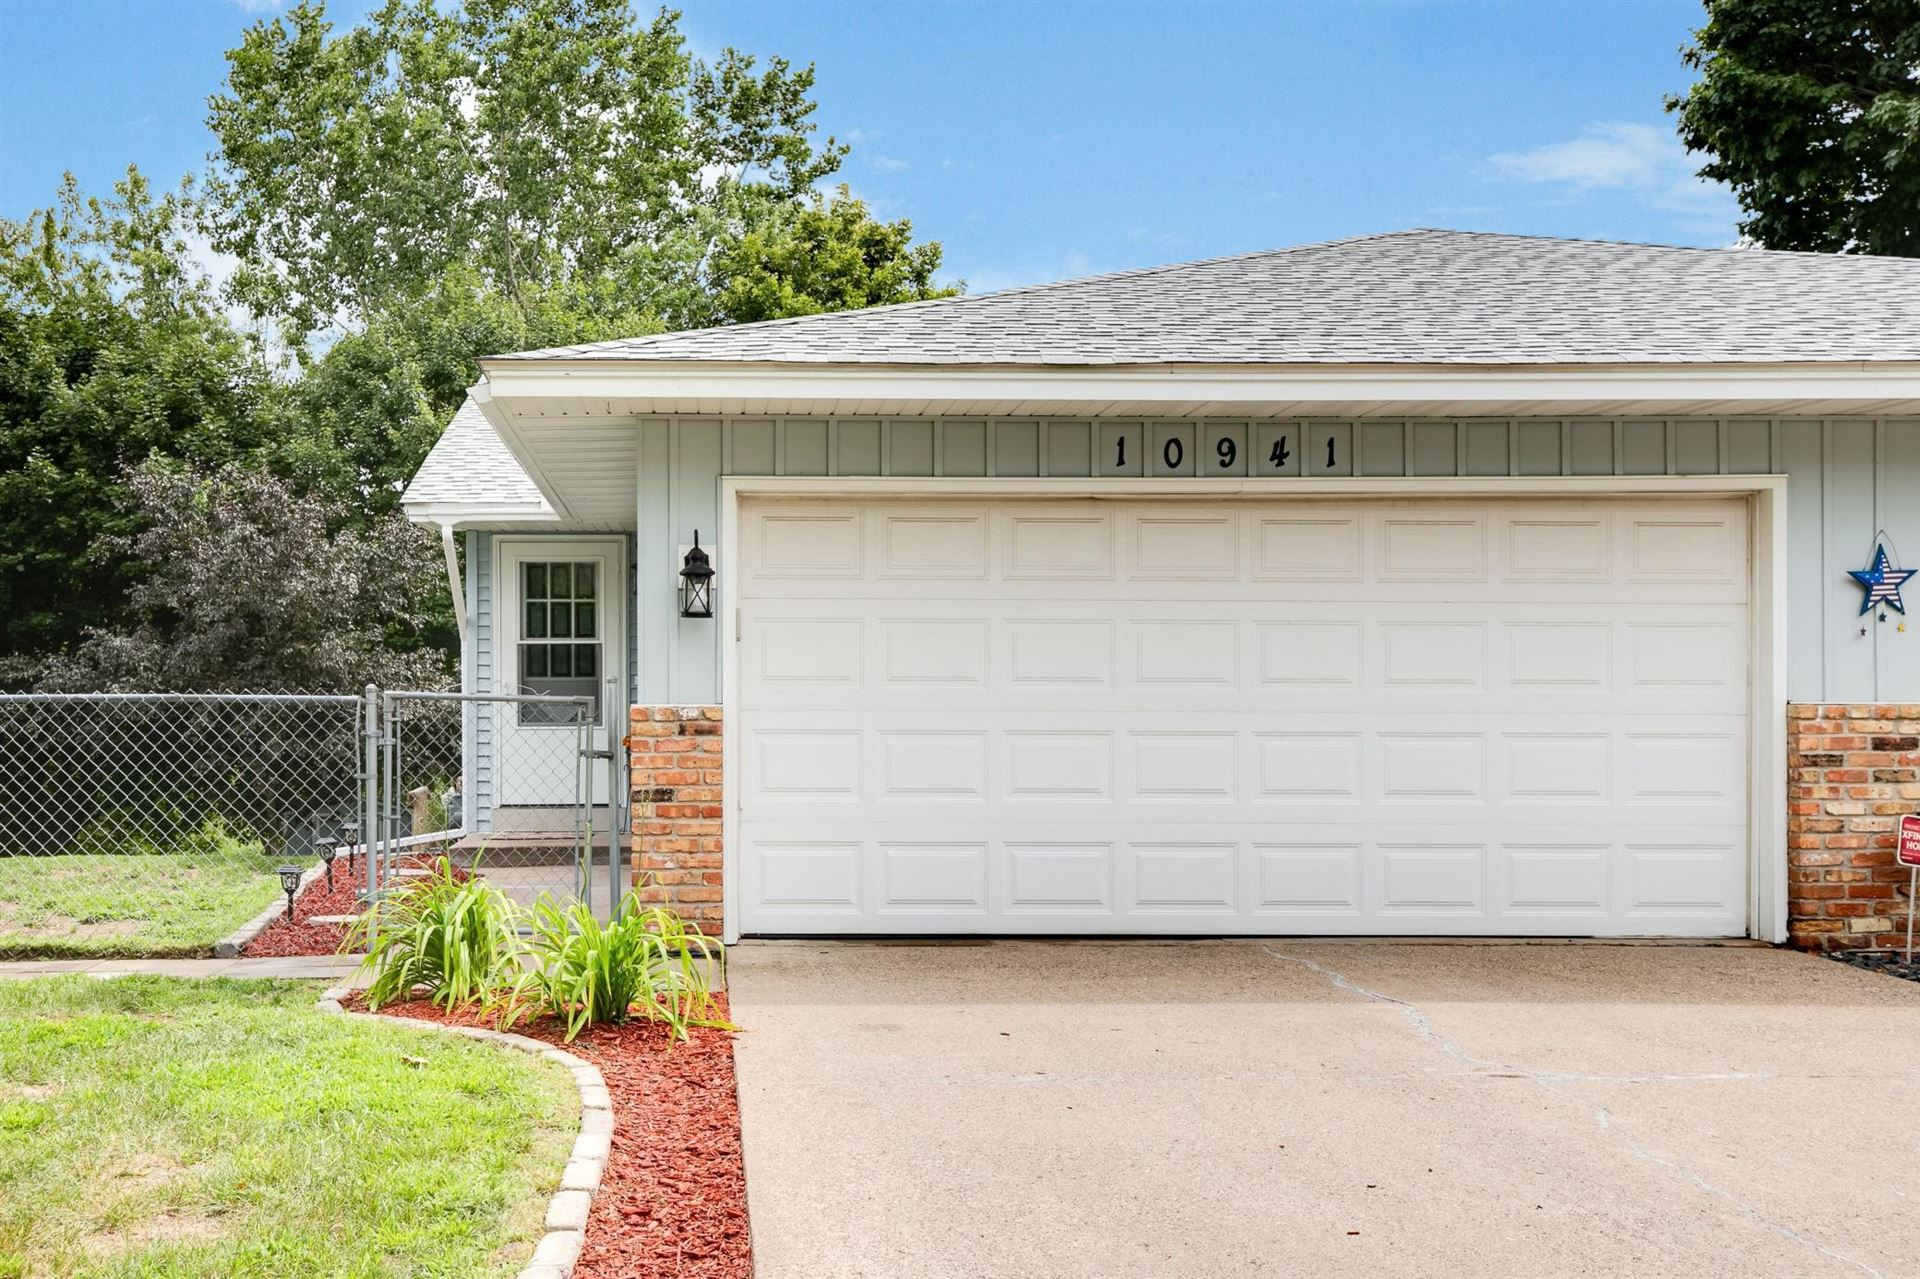 10941 Osage Street NW, Coon Rapids, MN 55433 - MLS#: 5627987